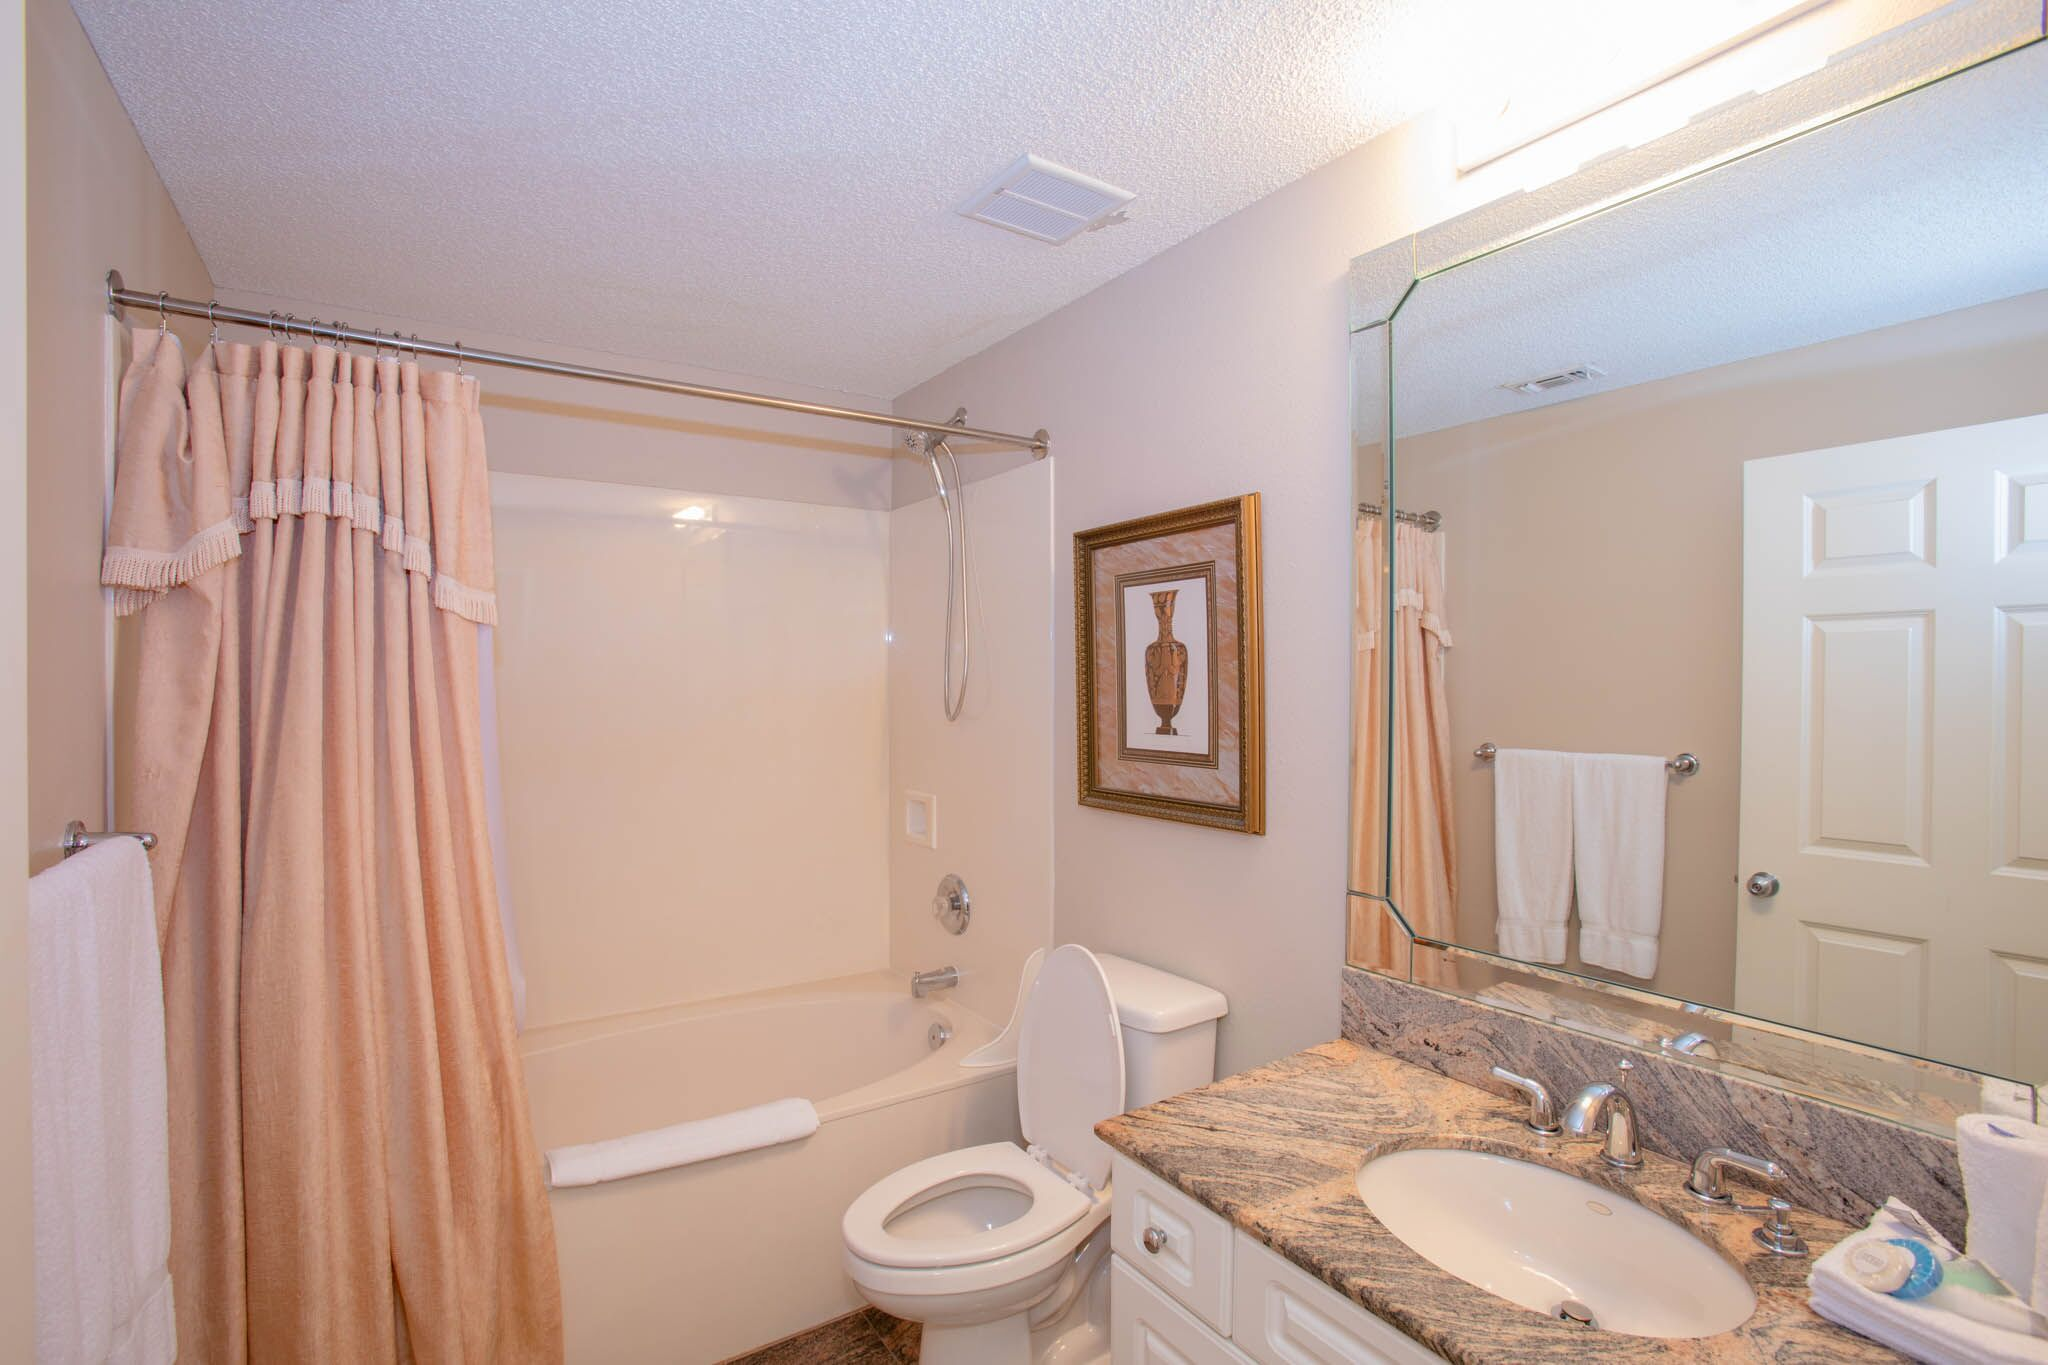 The Pearl of Navarre #504 Condo rental in The Pearl of Navarre Beach in Navarre Florida - #19